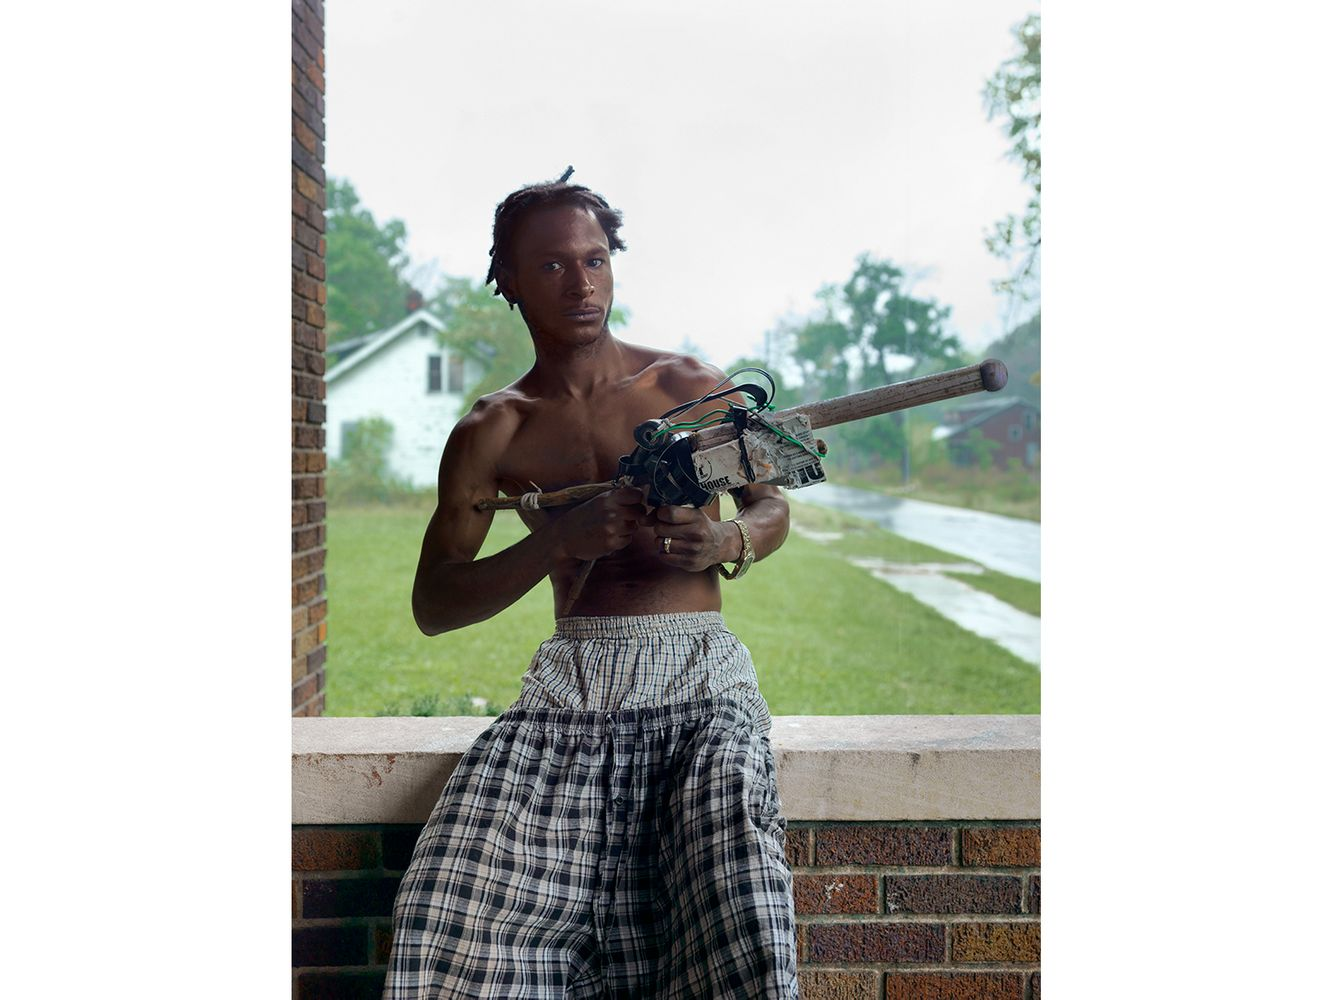 Los with His Harmless Weapon, Robinwood Street, Detroit 2014